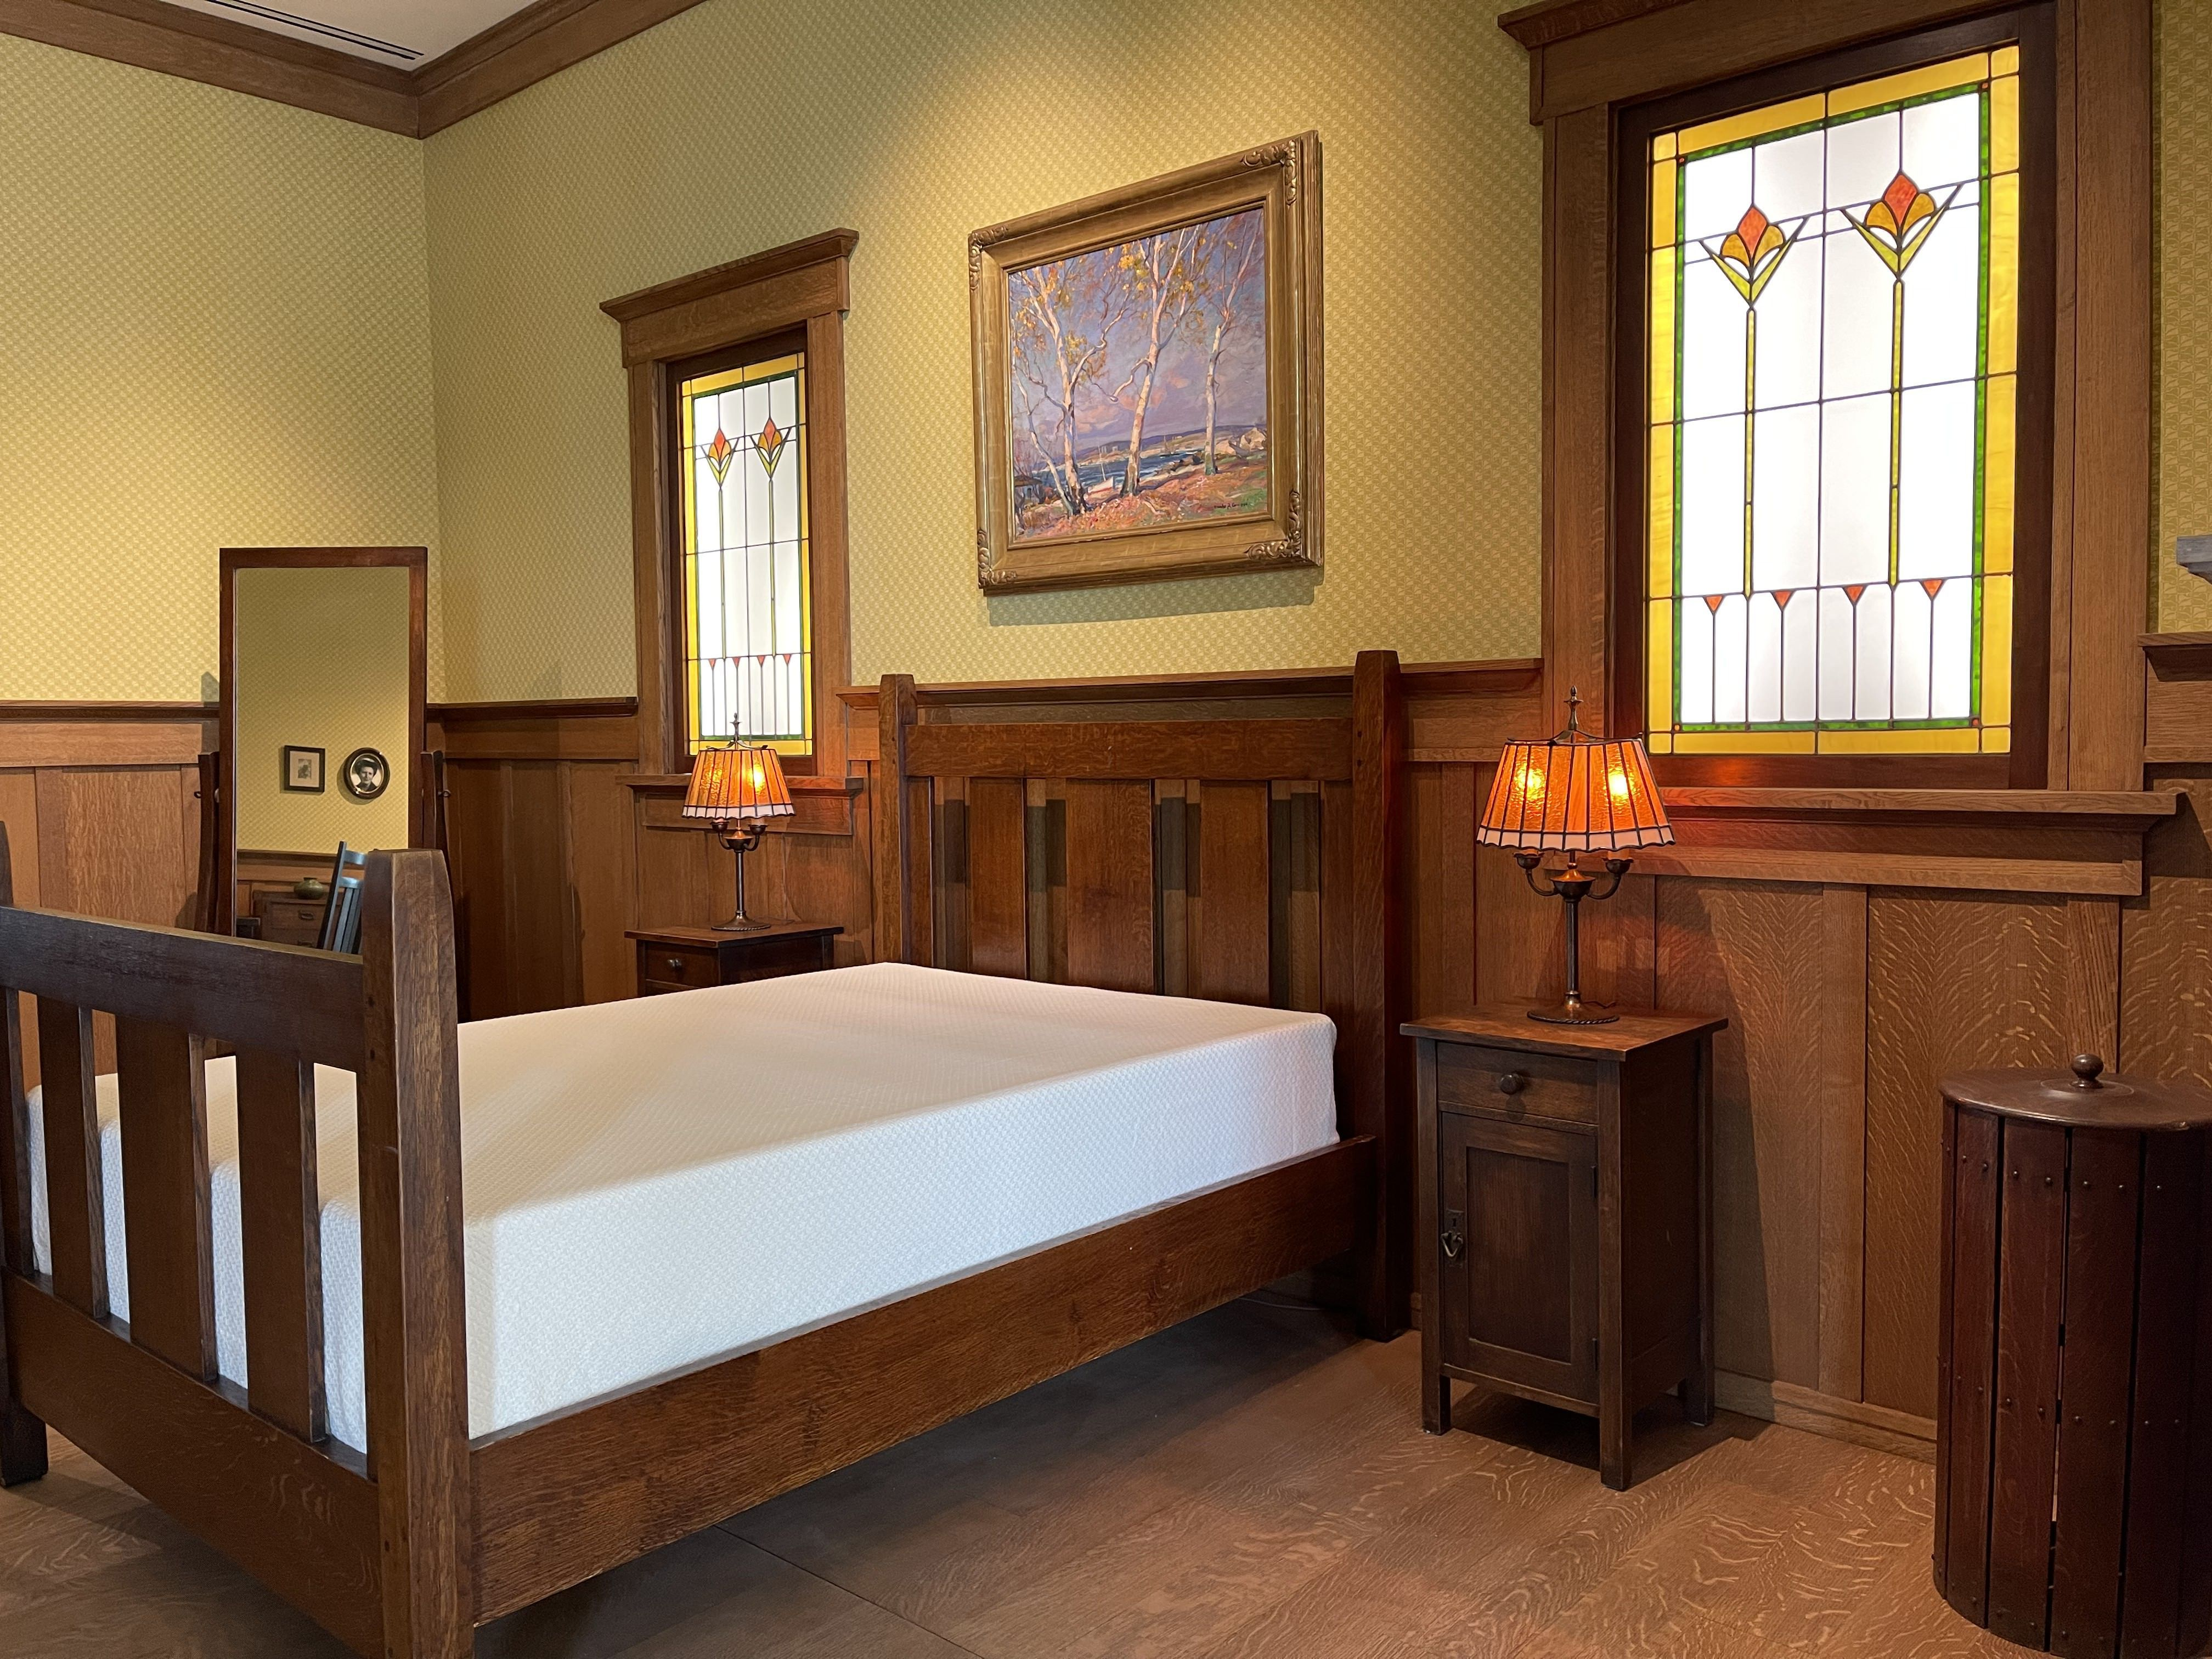 Gustav Stickley's recreated bedroom at the Museum of the American Arts & Crafts Movement